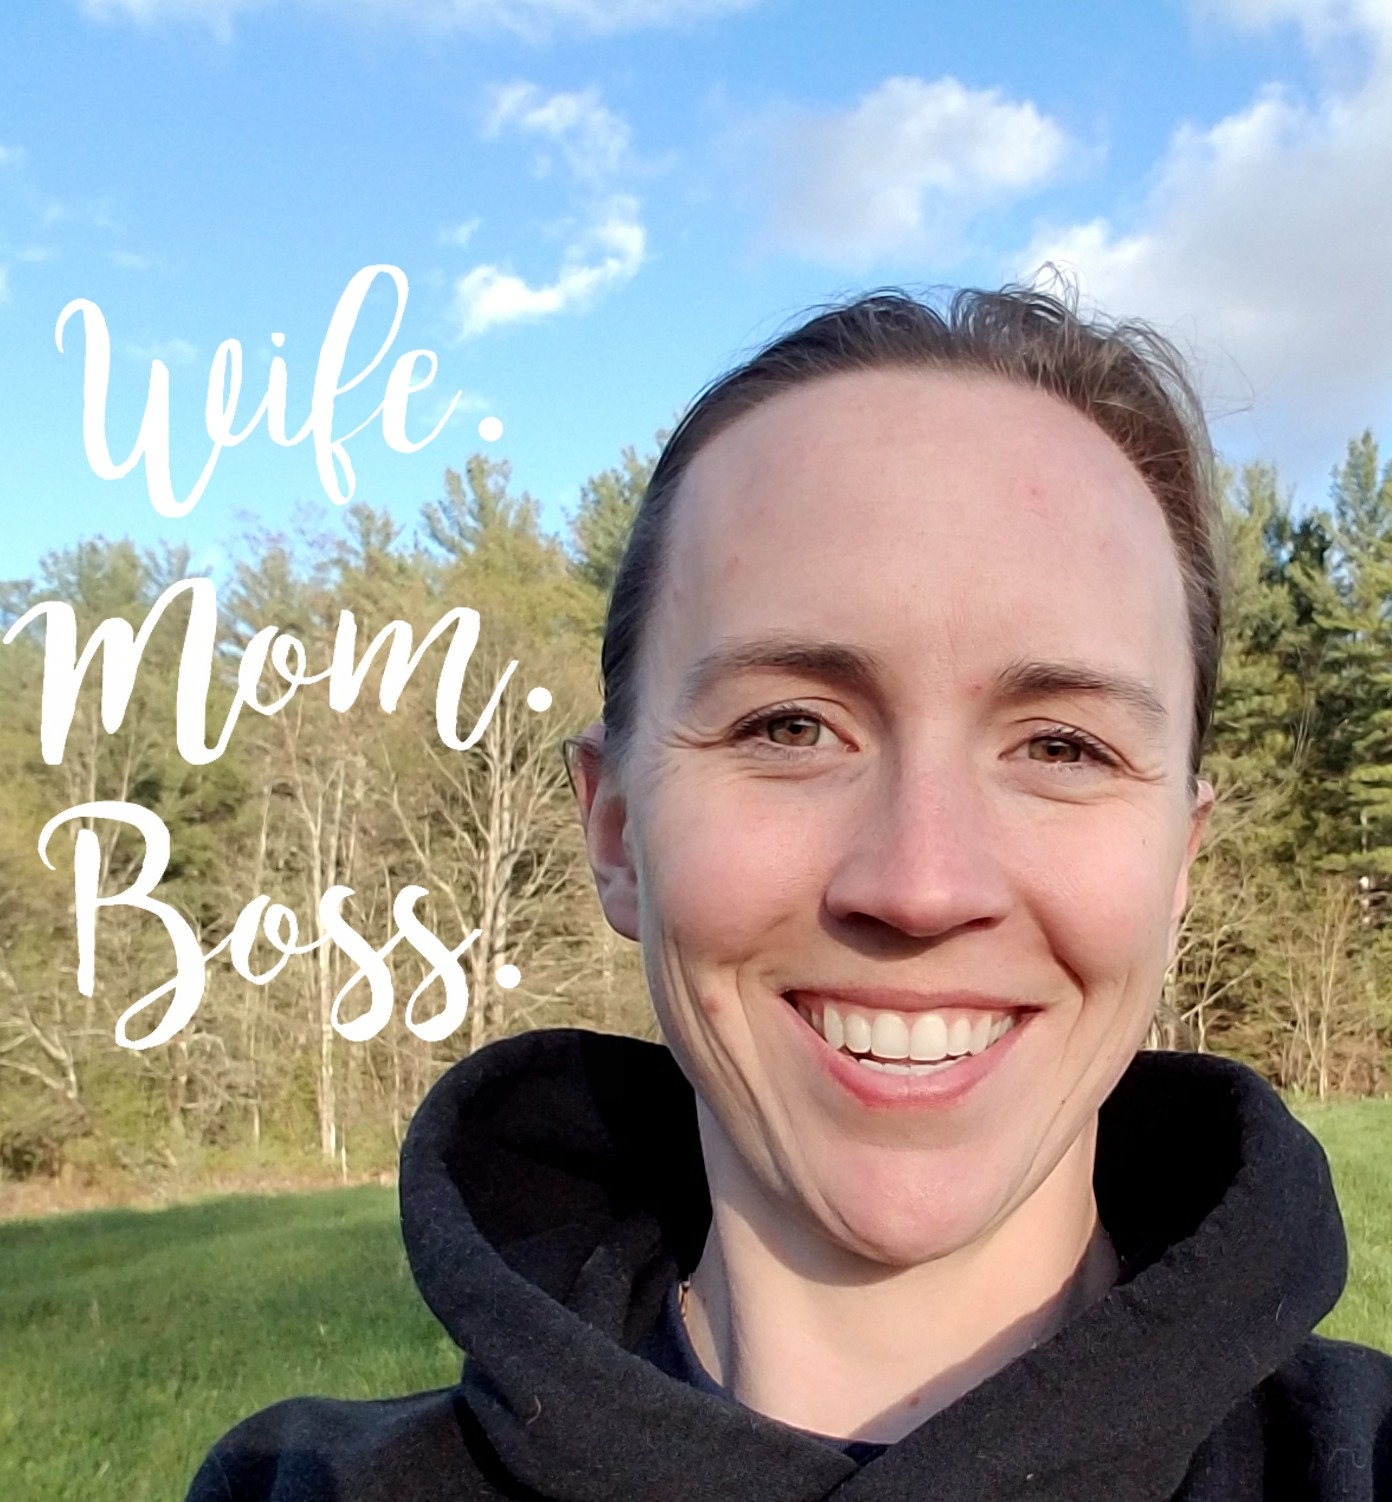 Better Beauty Vermont Wife Mom Boss Selfie Portrait Headshot